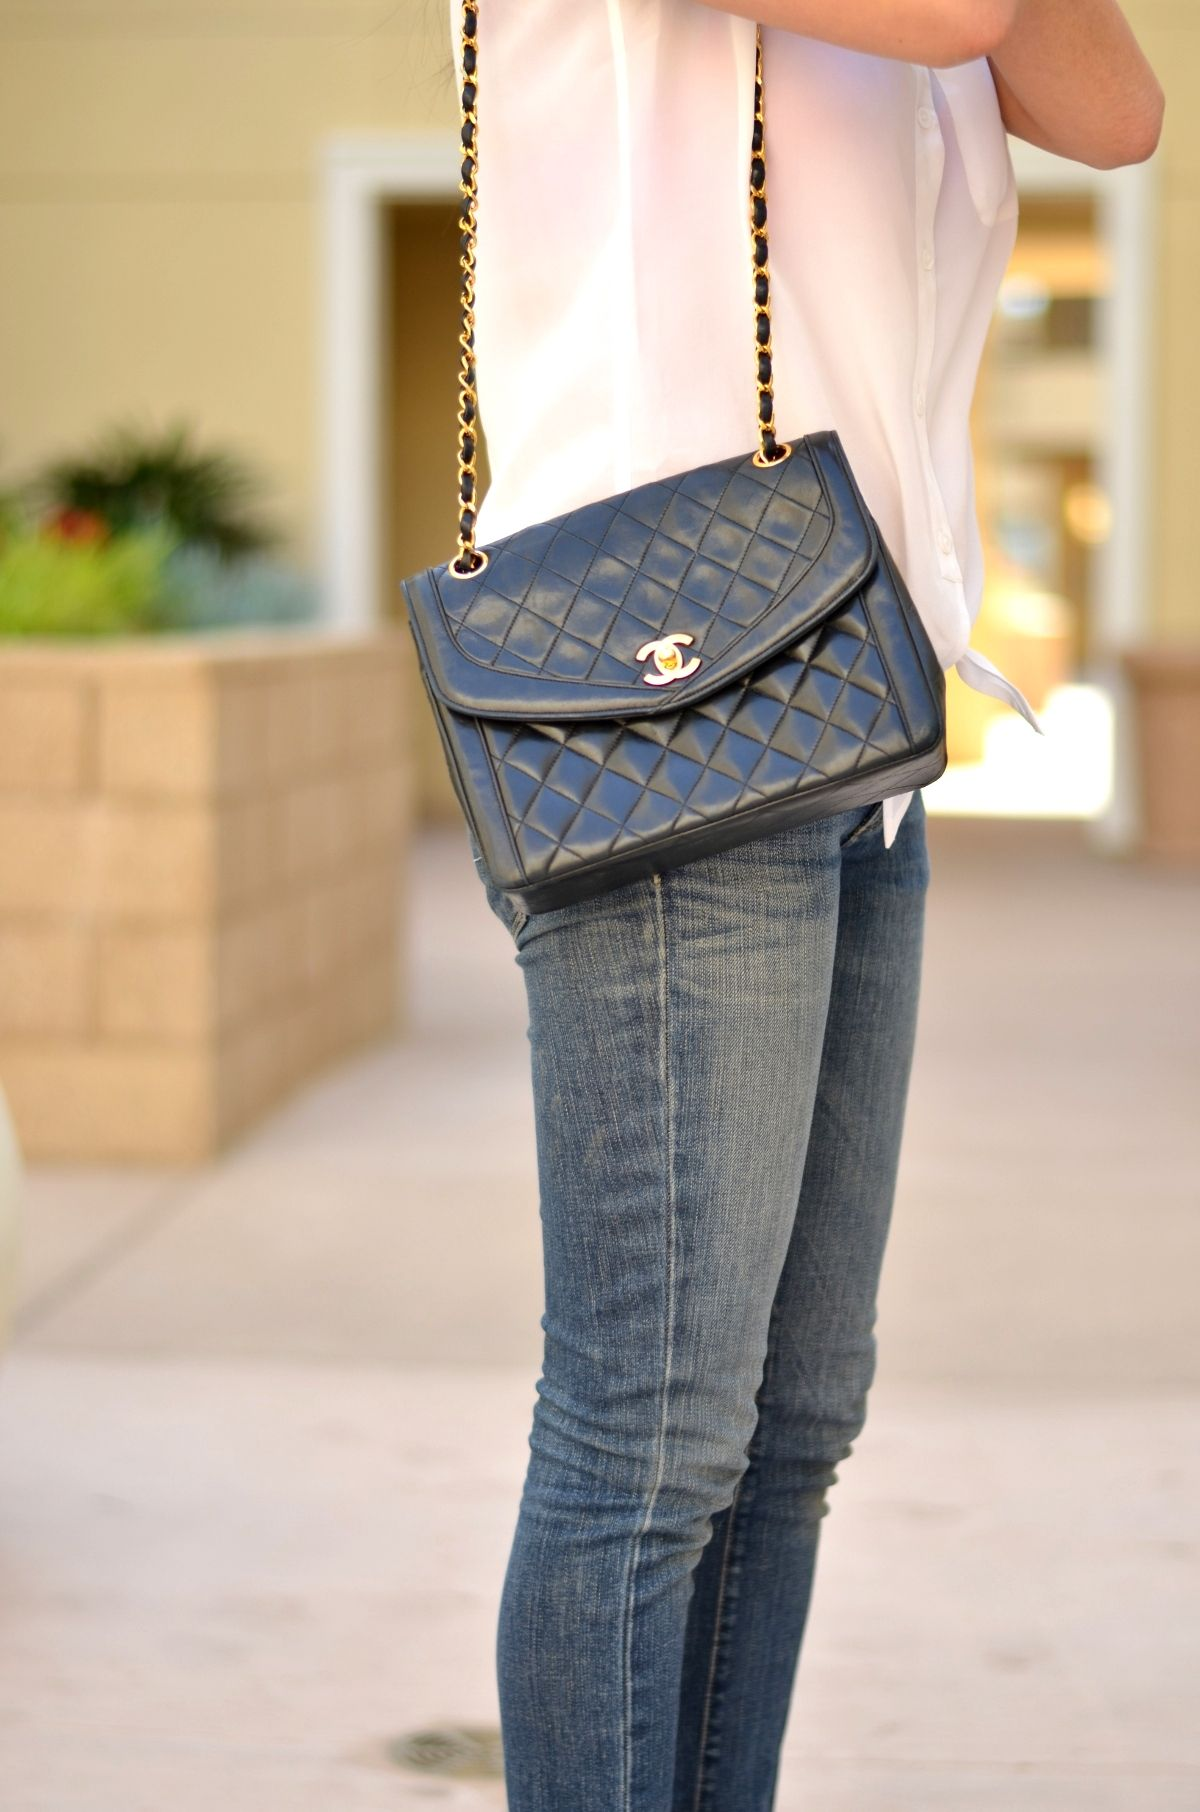 chanel classic black quilted bag with chains (39010-b) - Google ... : vintage chanel quilted shoulder bag - Adamdwight.com